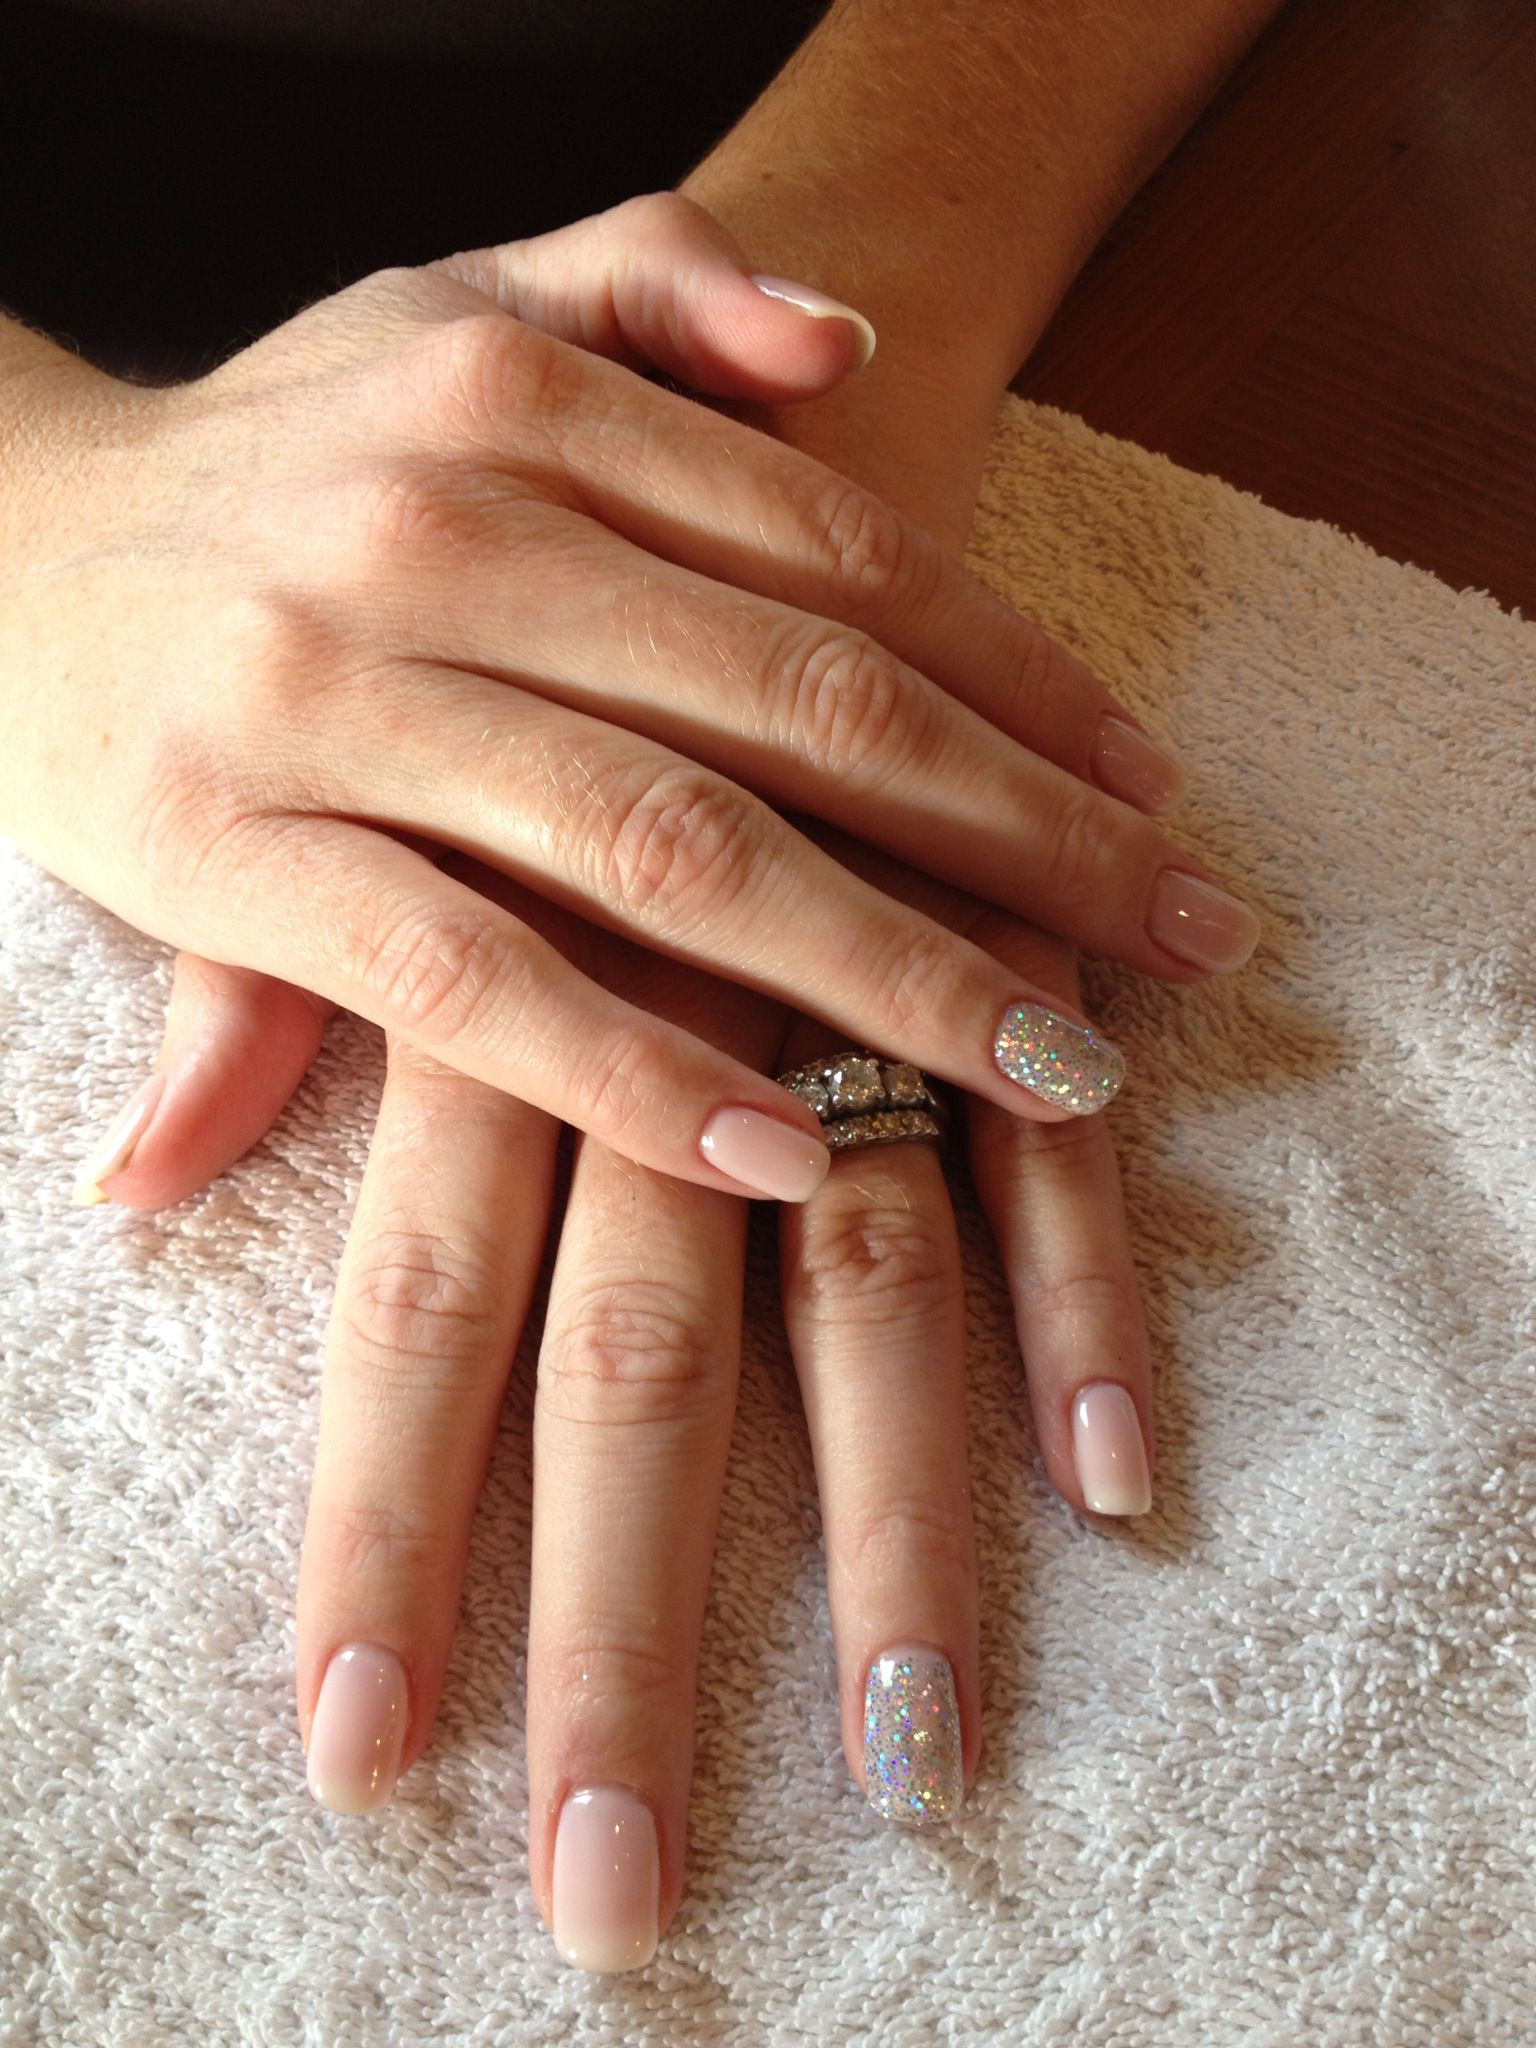 cnd shellac in romantique with 1 accent nail done with